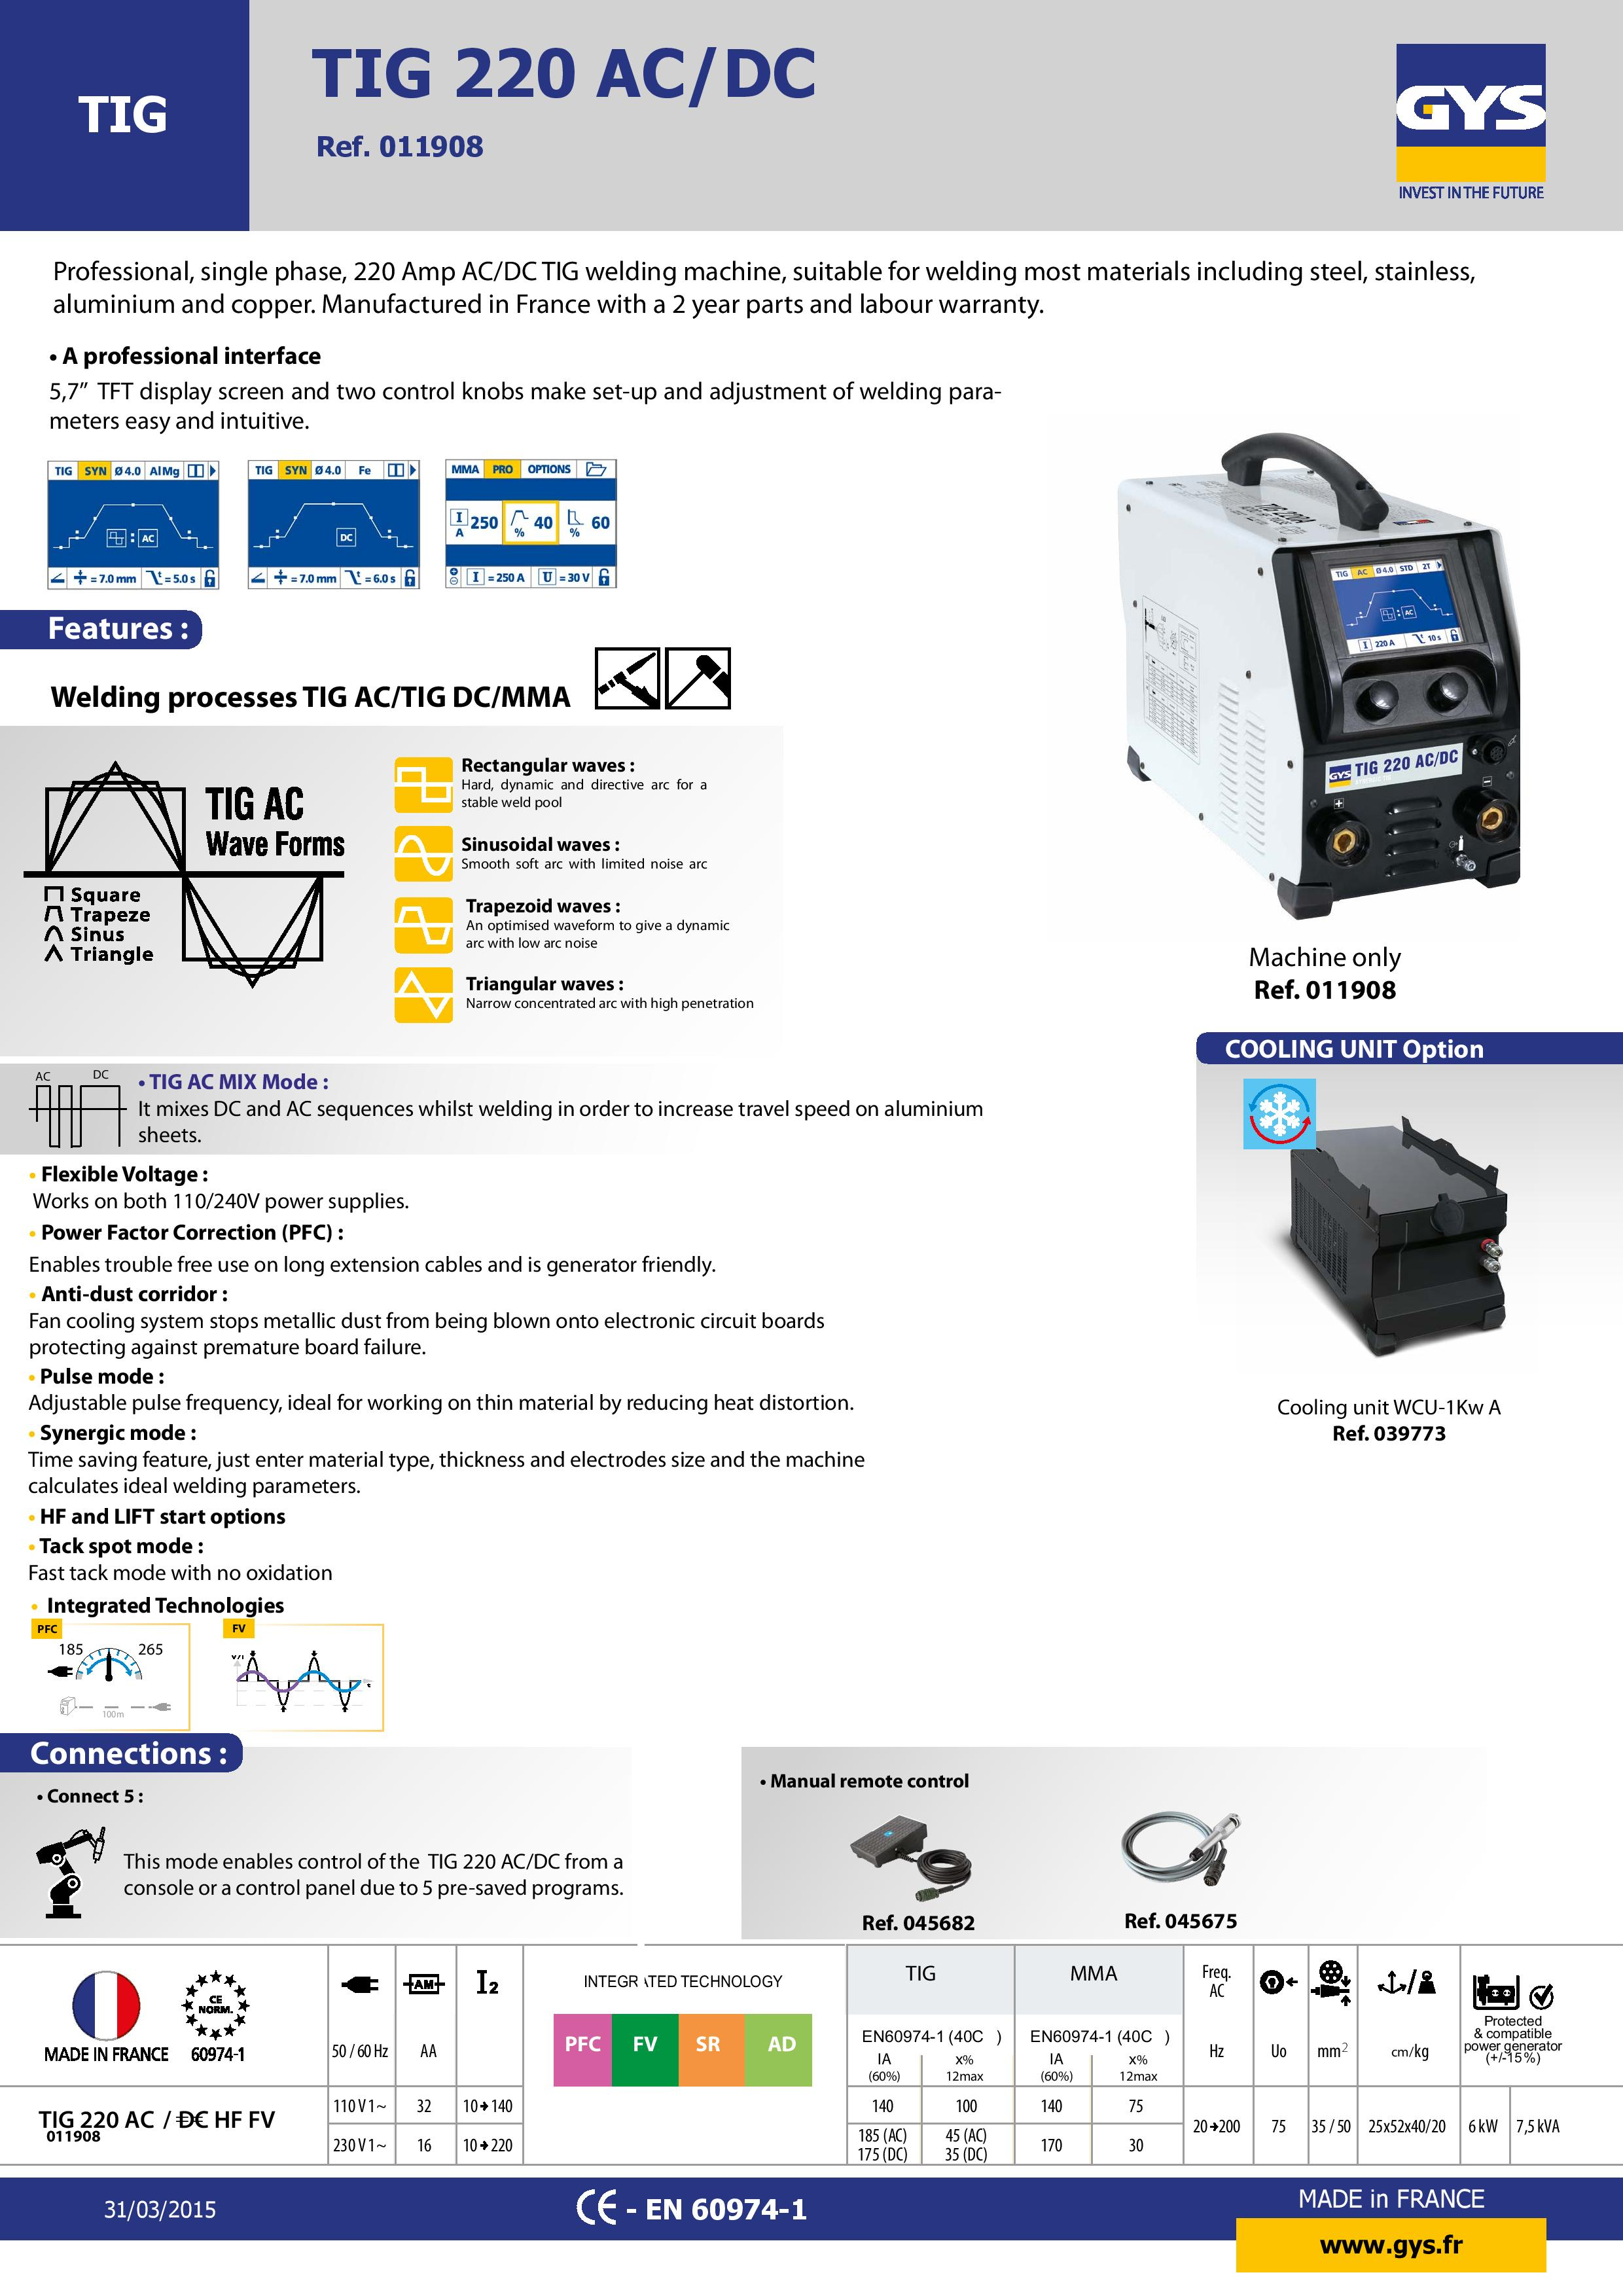 TIG 220 AC/DC Specification